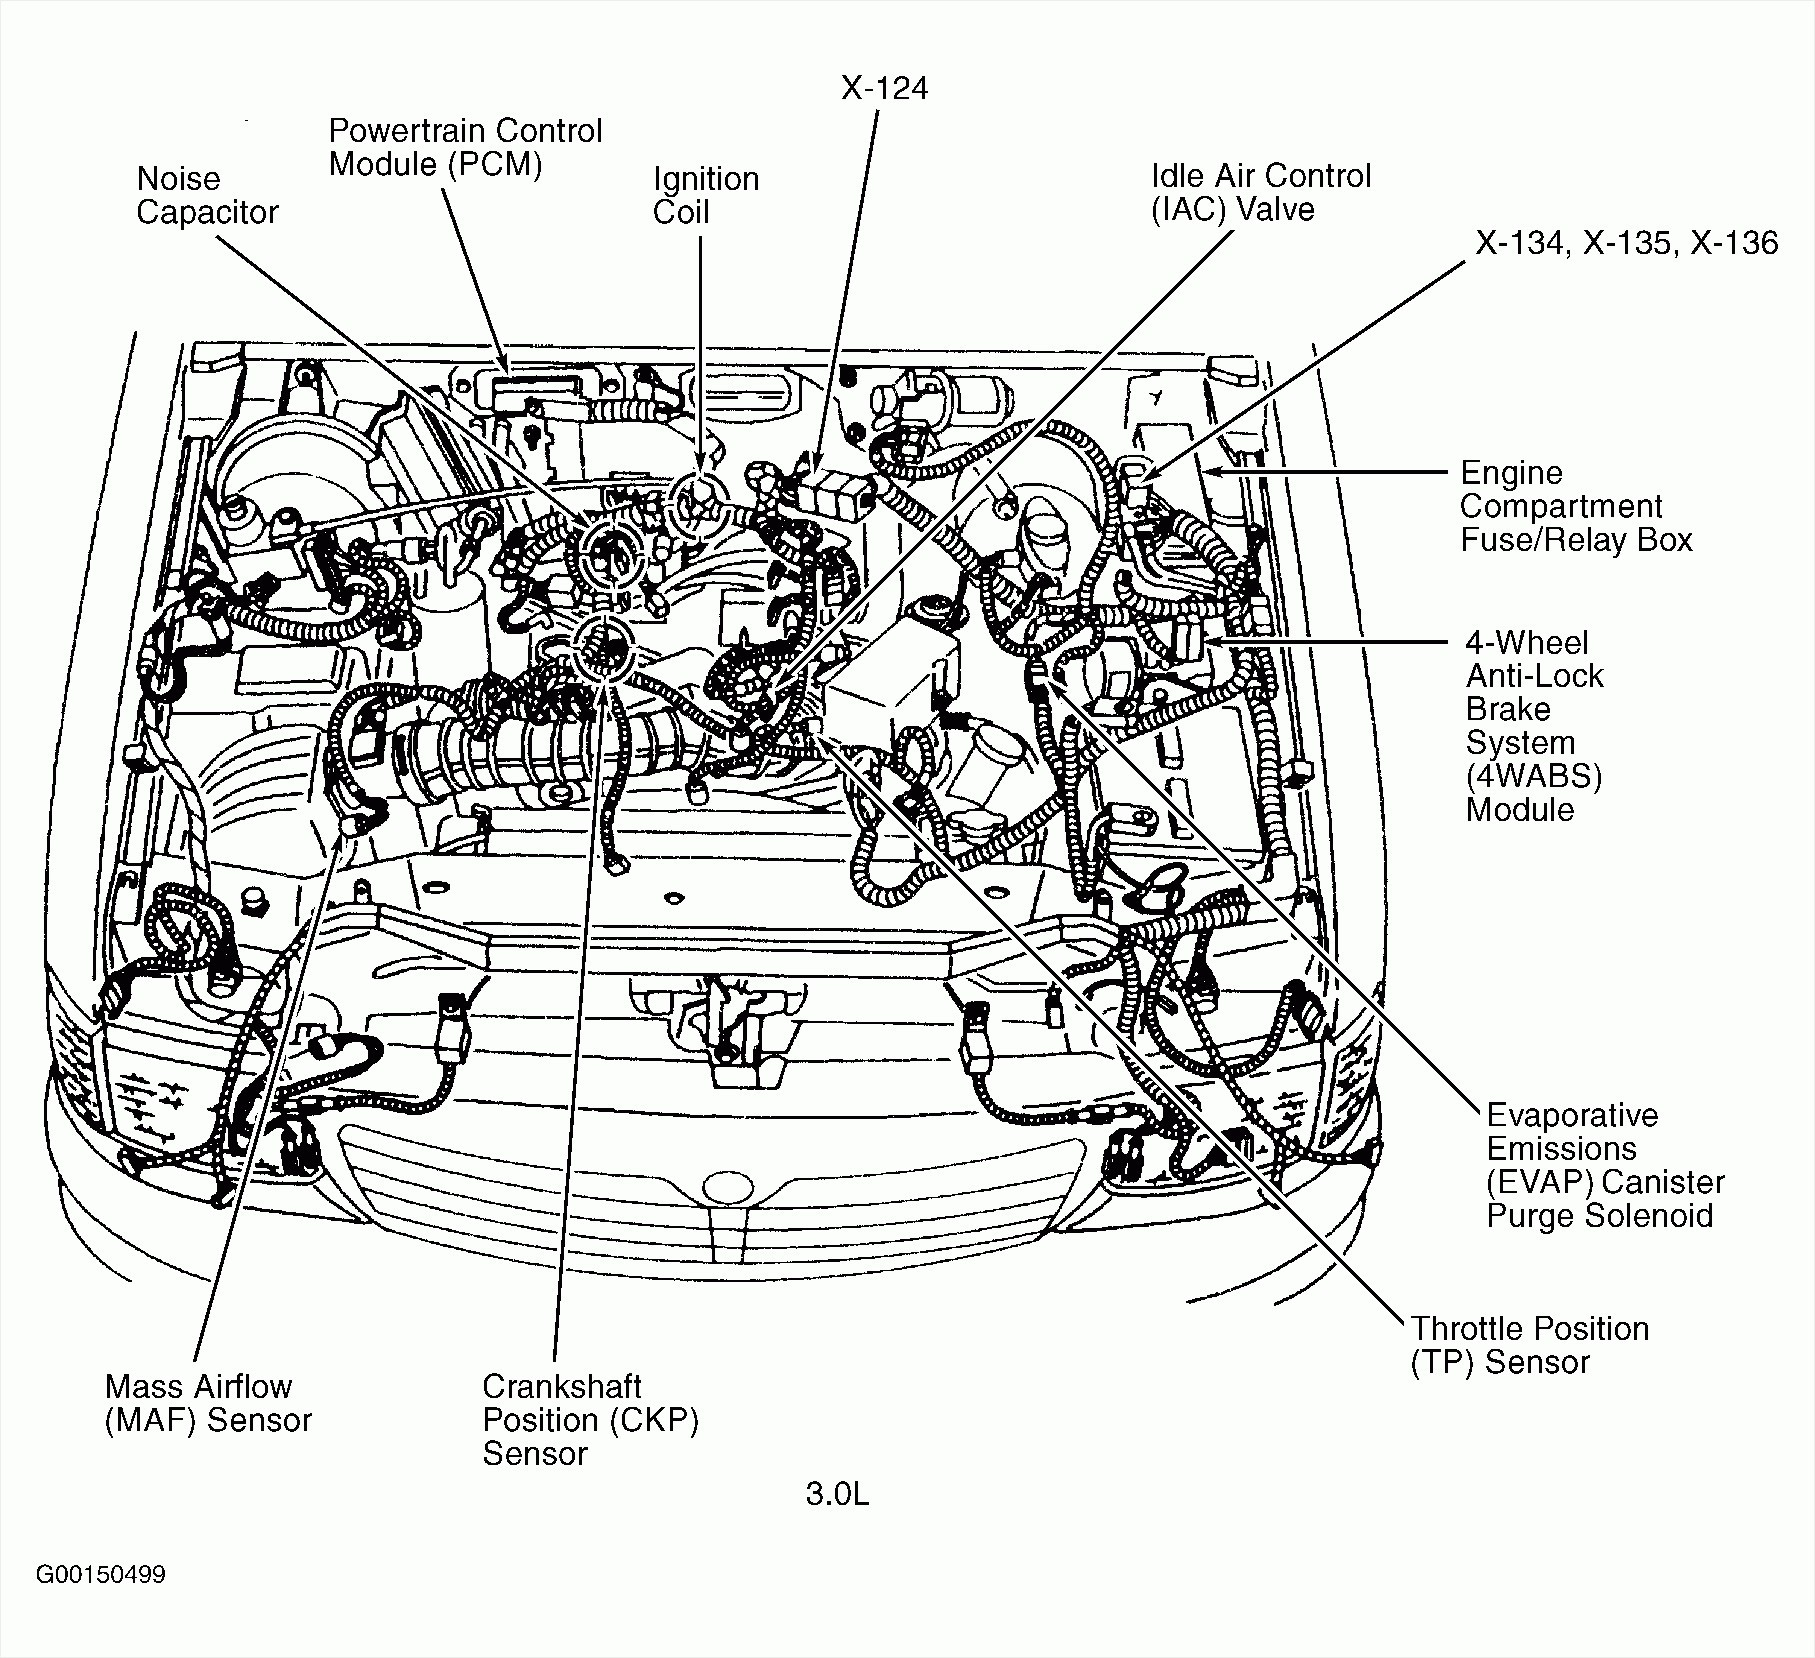 1999 Buick Century 3 1 Engine Diagram Wiring Diagram System Tan Locate Tan Locate Ediliadesign It